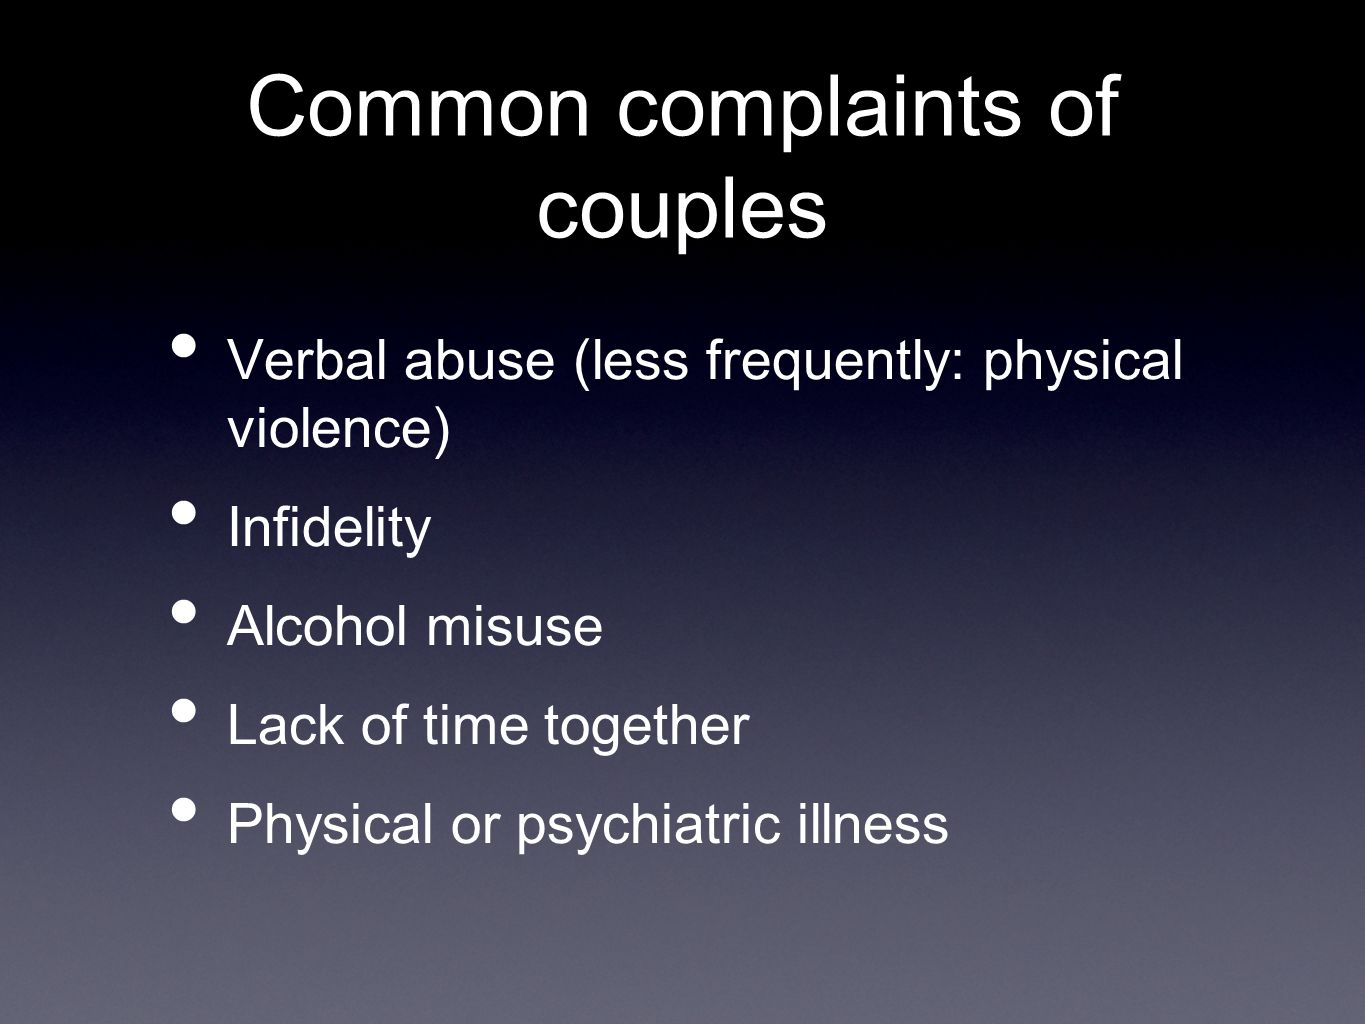 Common complaints of couples Verbal abuse (less frequently: physical violence) Infidelity Alcohol misuse Lack of time together Physical or psychiatric illness